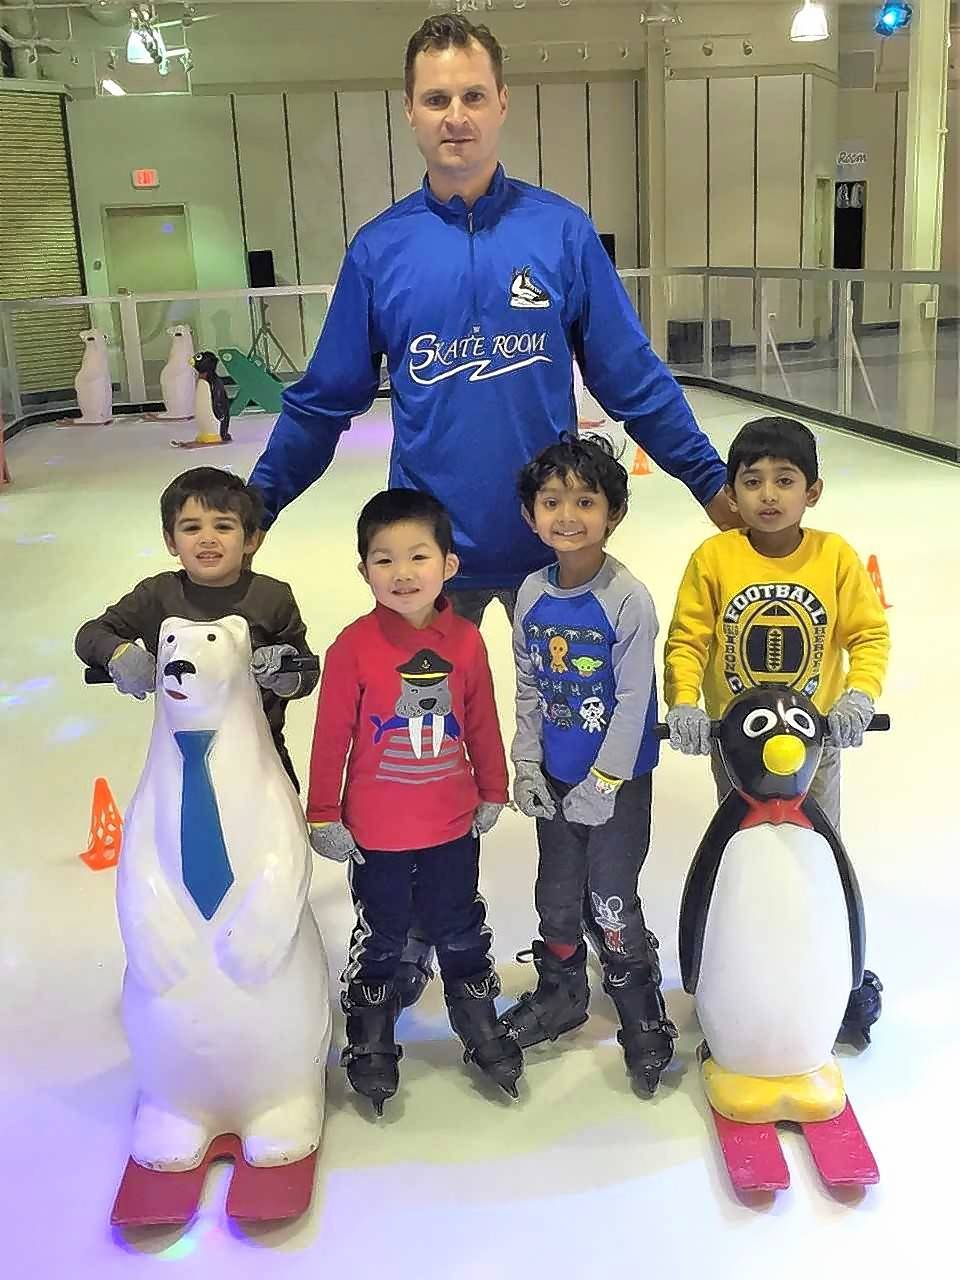 Vernon Hills Montessori Academy students Ethan Boulanger, left, Leo Sze, Vihaan Vyas, and Aryan Deshmukh, learn to ice skate with the help of Kevin Jotkus, owner of the Skate Room skating rink in Hawthorn Mall in Vernon Hills.